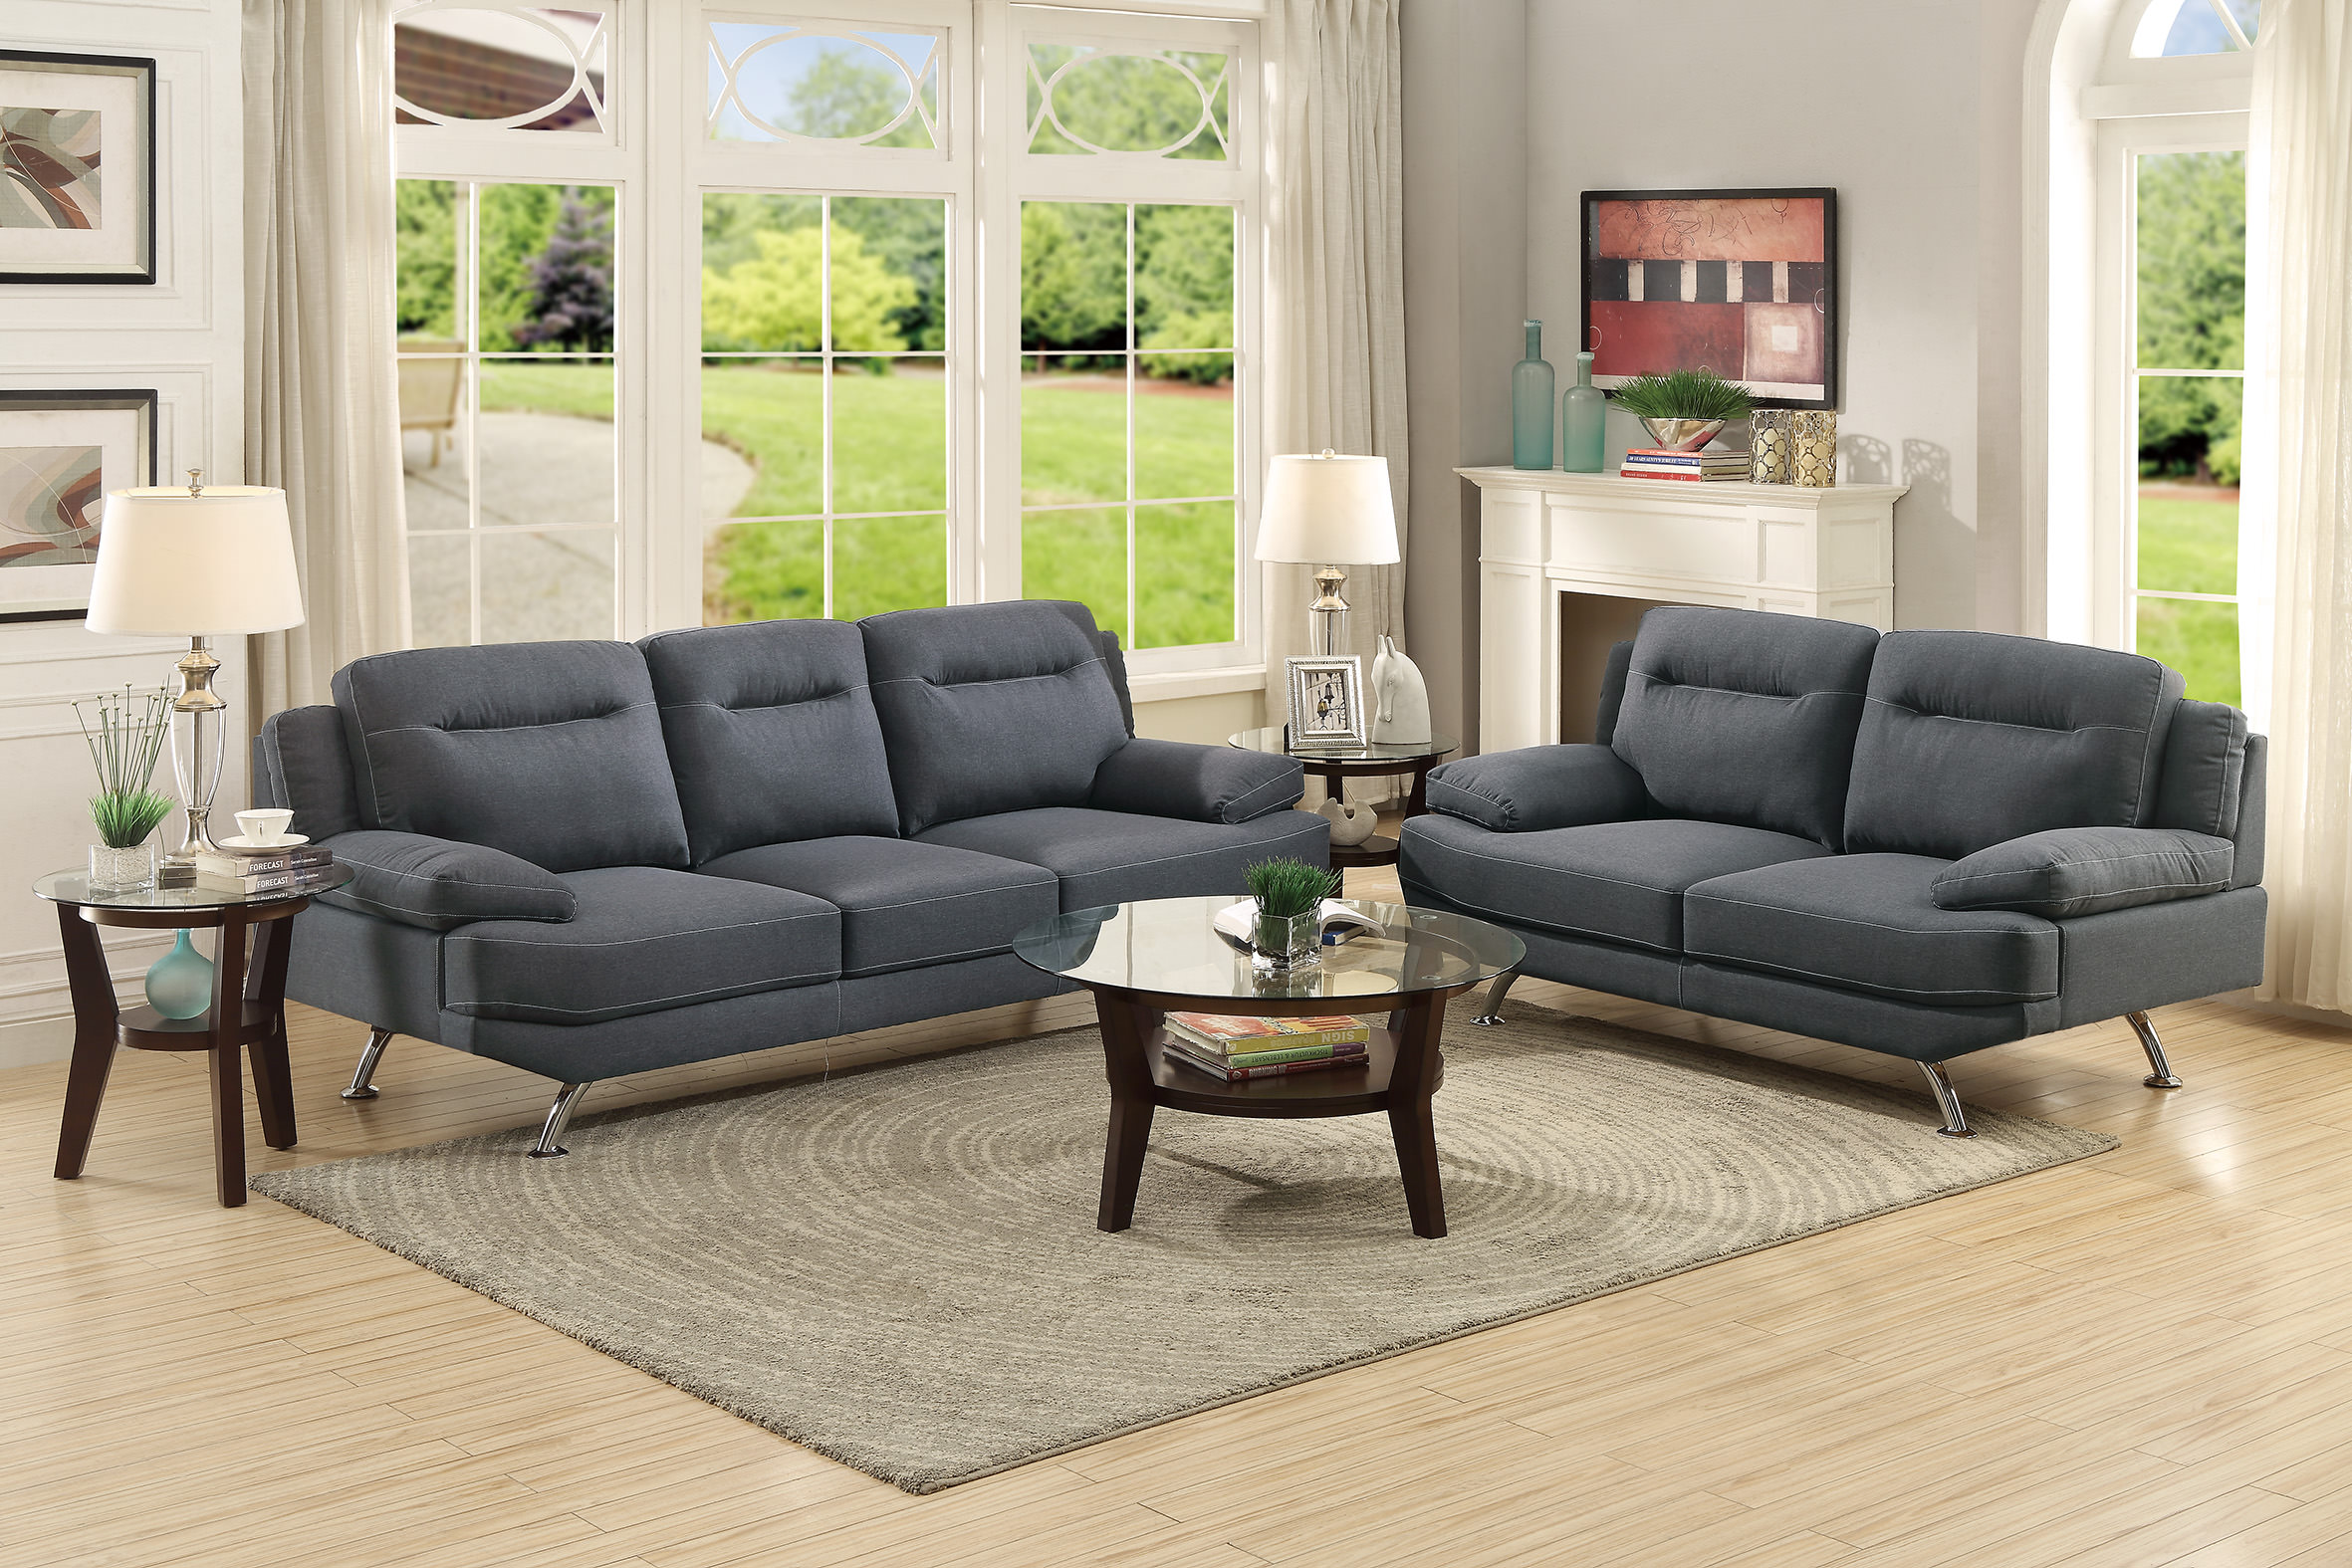 F7929 blue gray 2 pcs sofa set by poundex for Blue gray sofa